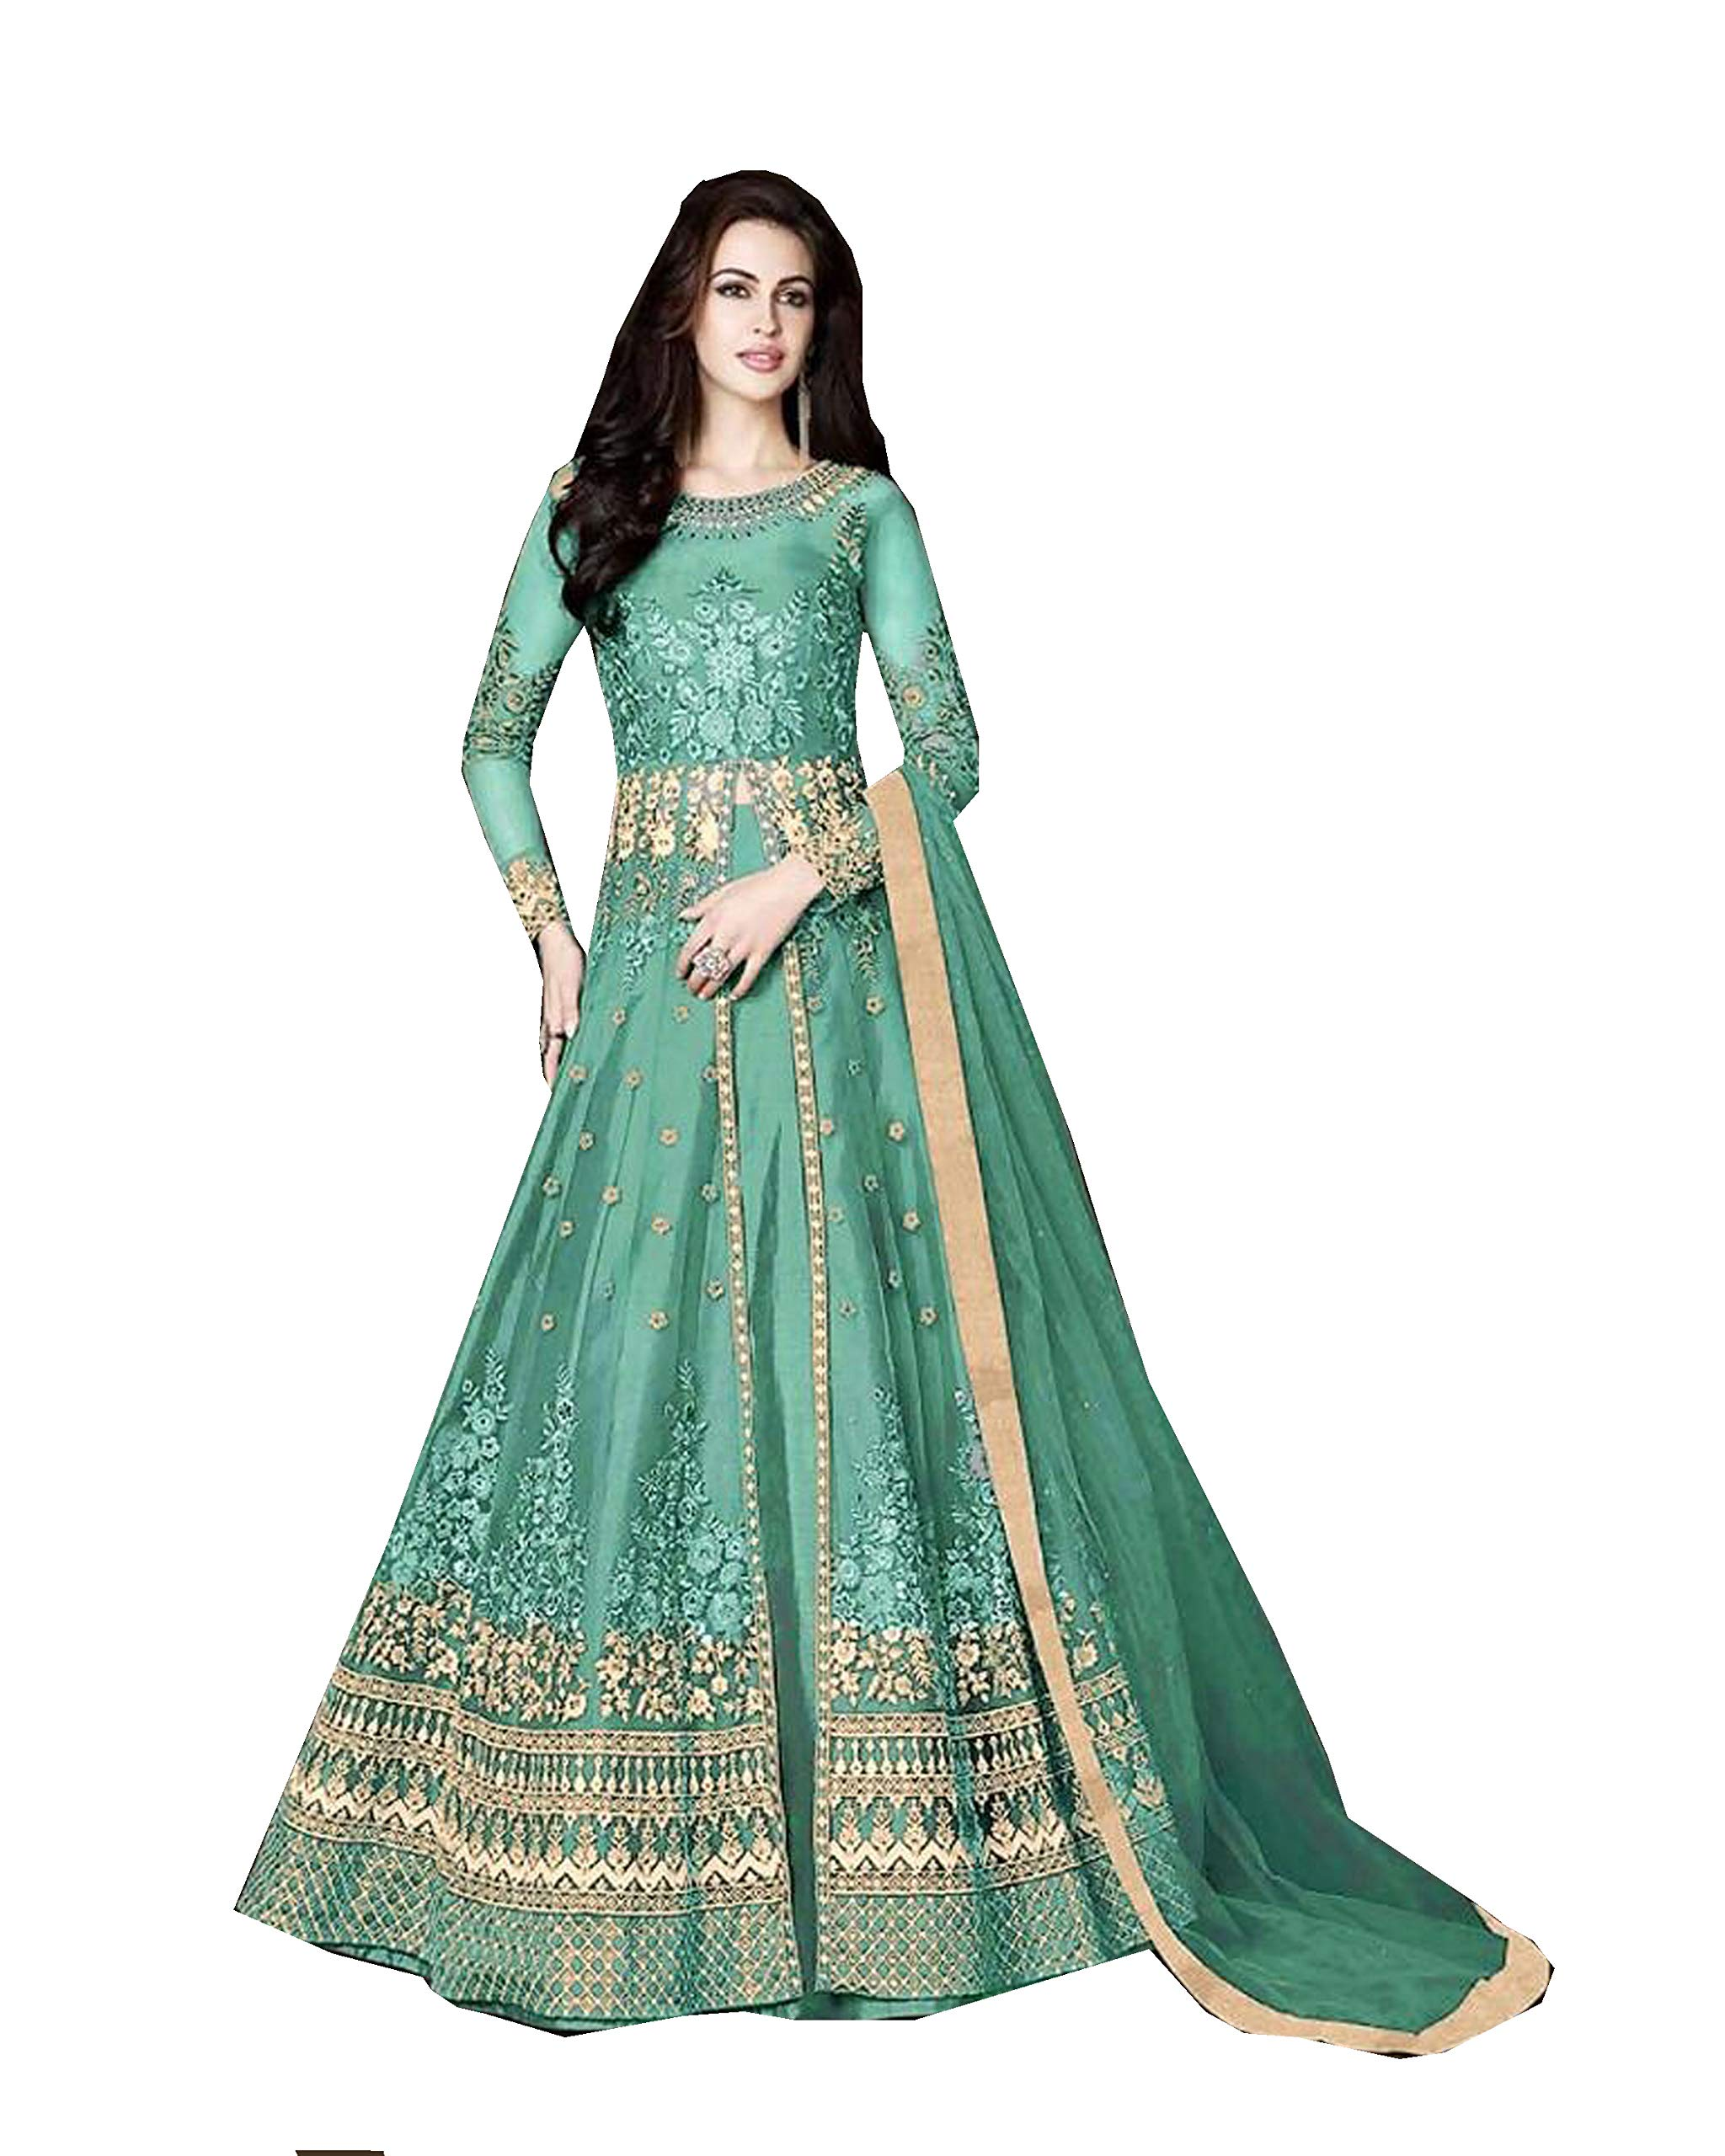 Delisa Indian/Pakistani Bollywood Party Wear Long Anarkali Gown for Womens Razzi 1002 (Turquoise, SMALL-38)